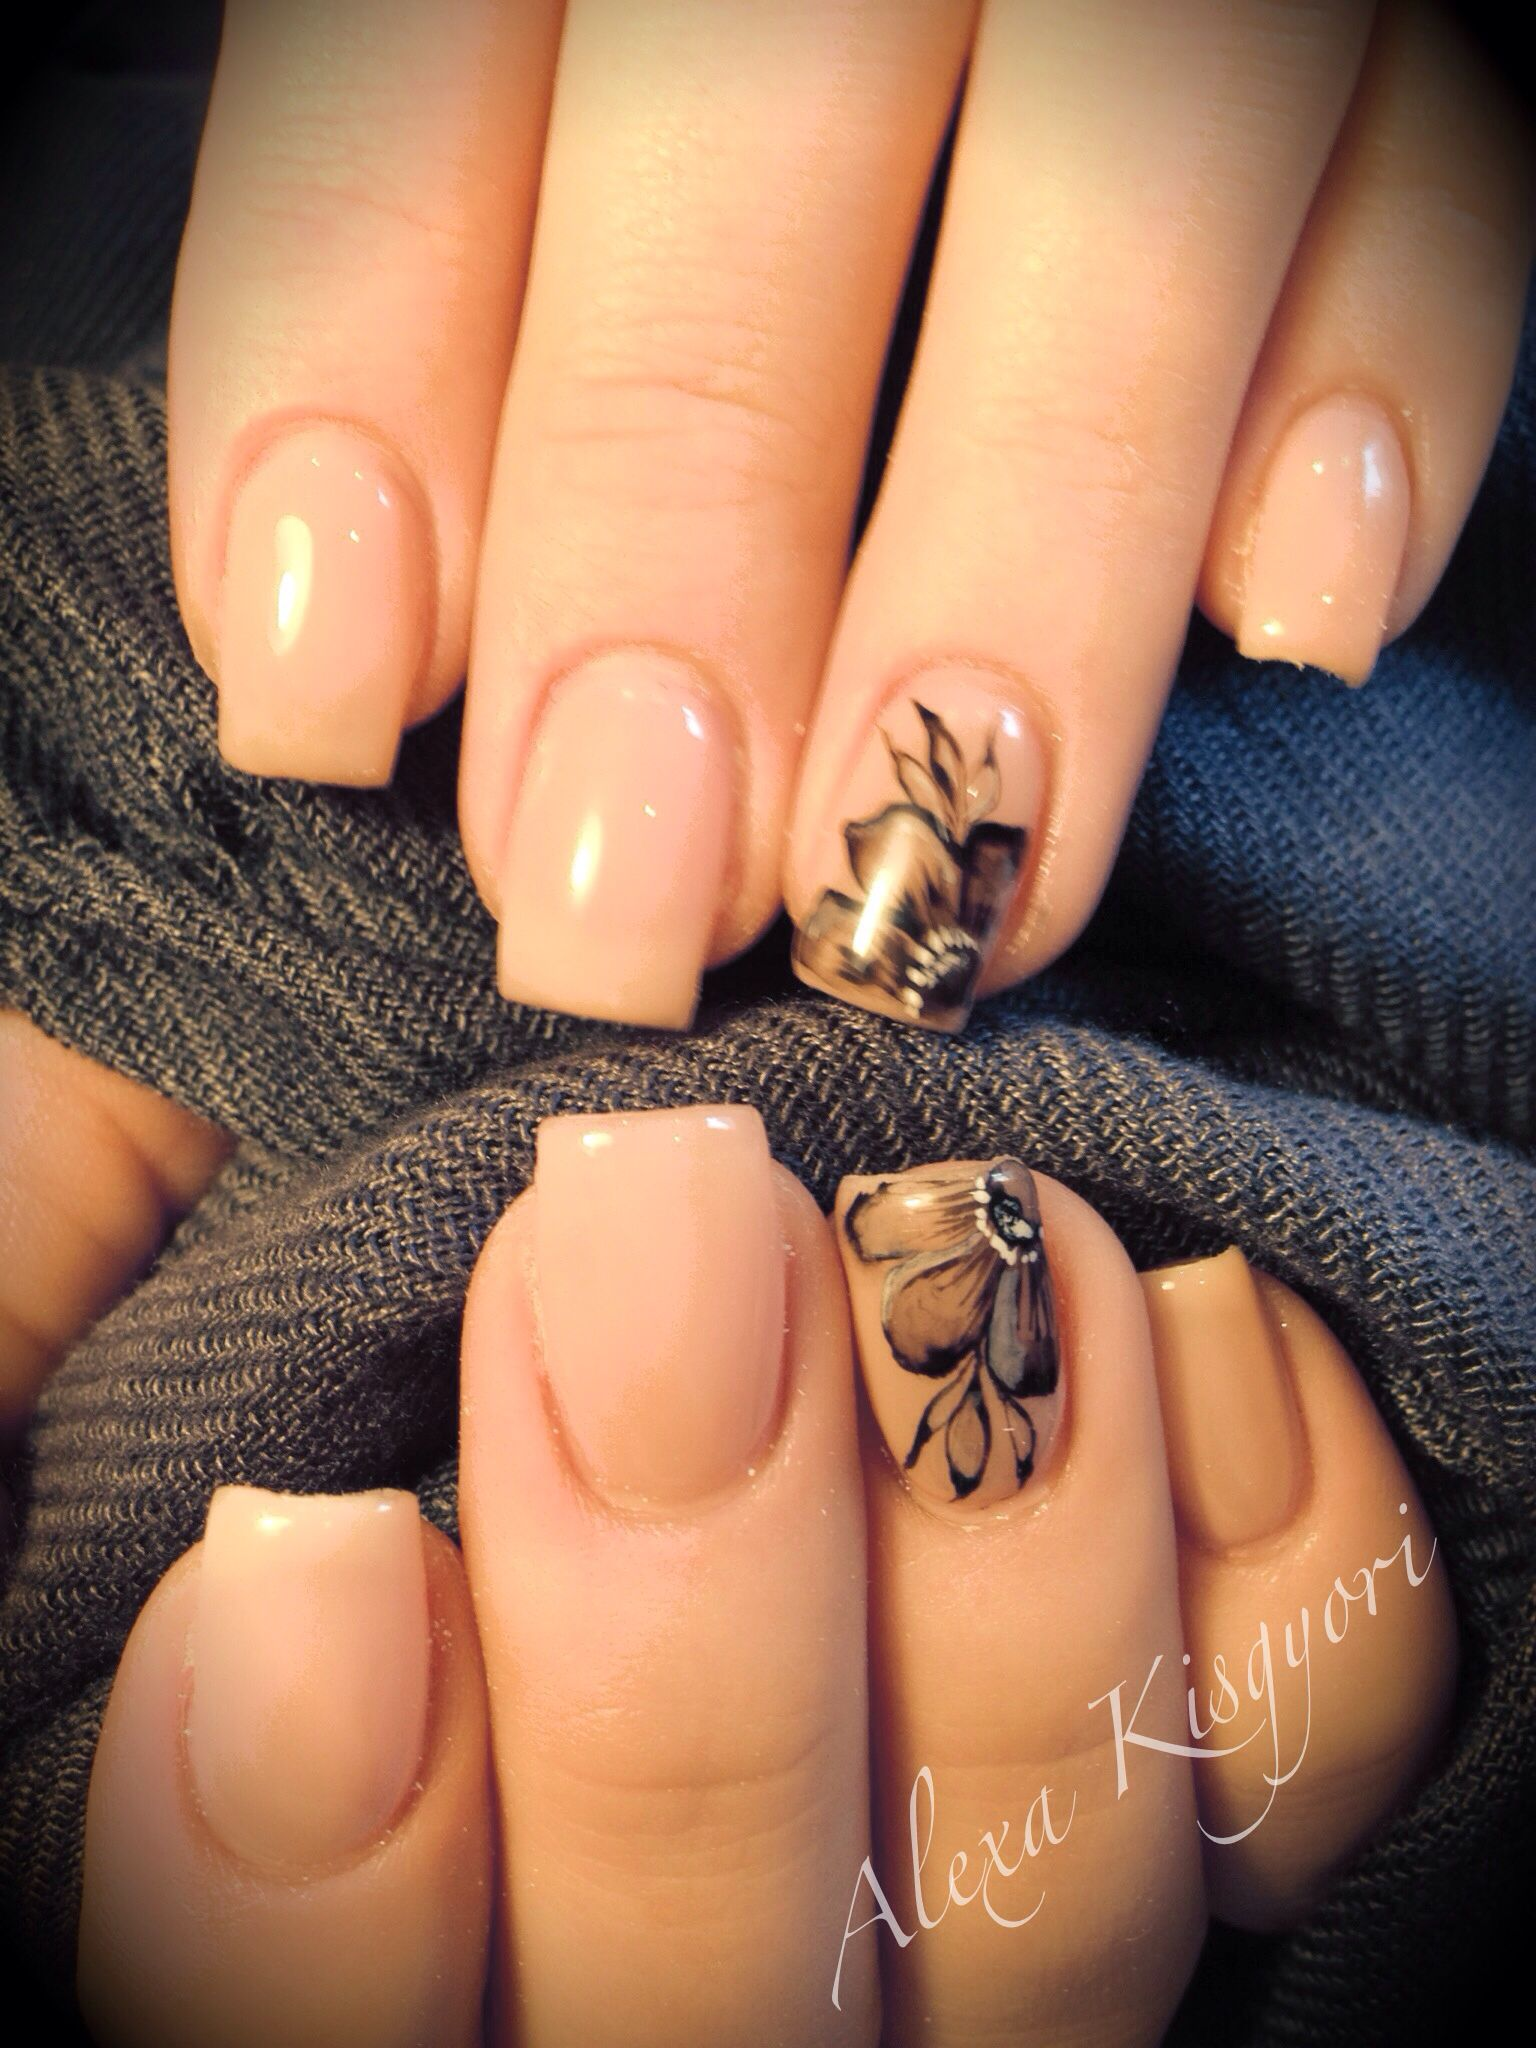 Pin On Nail Love